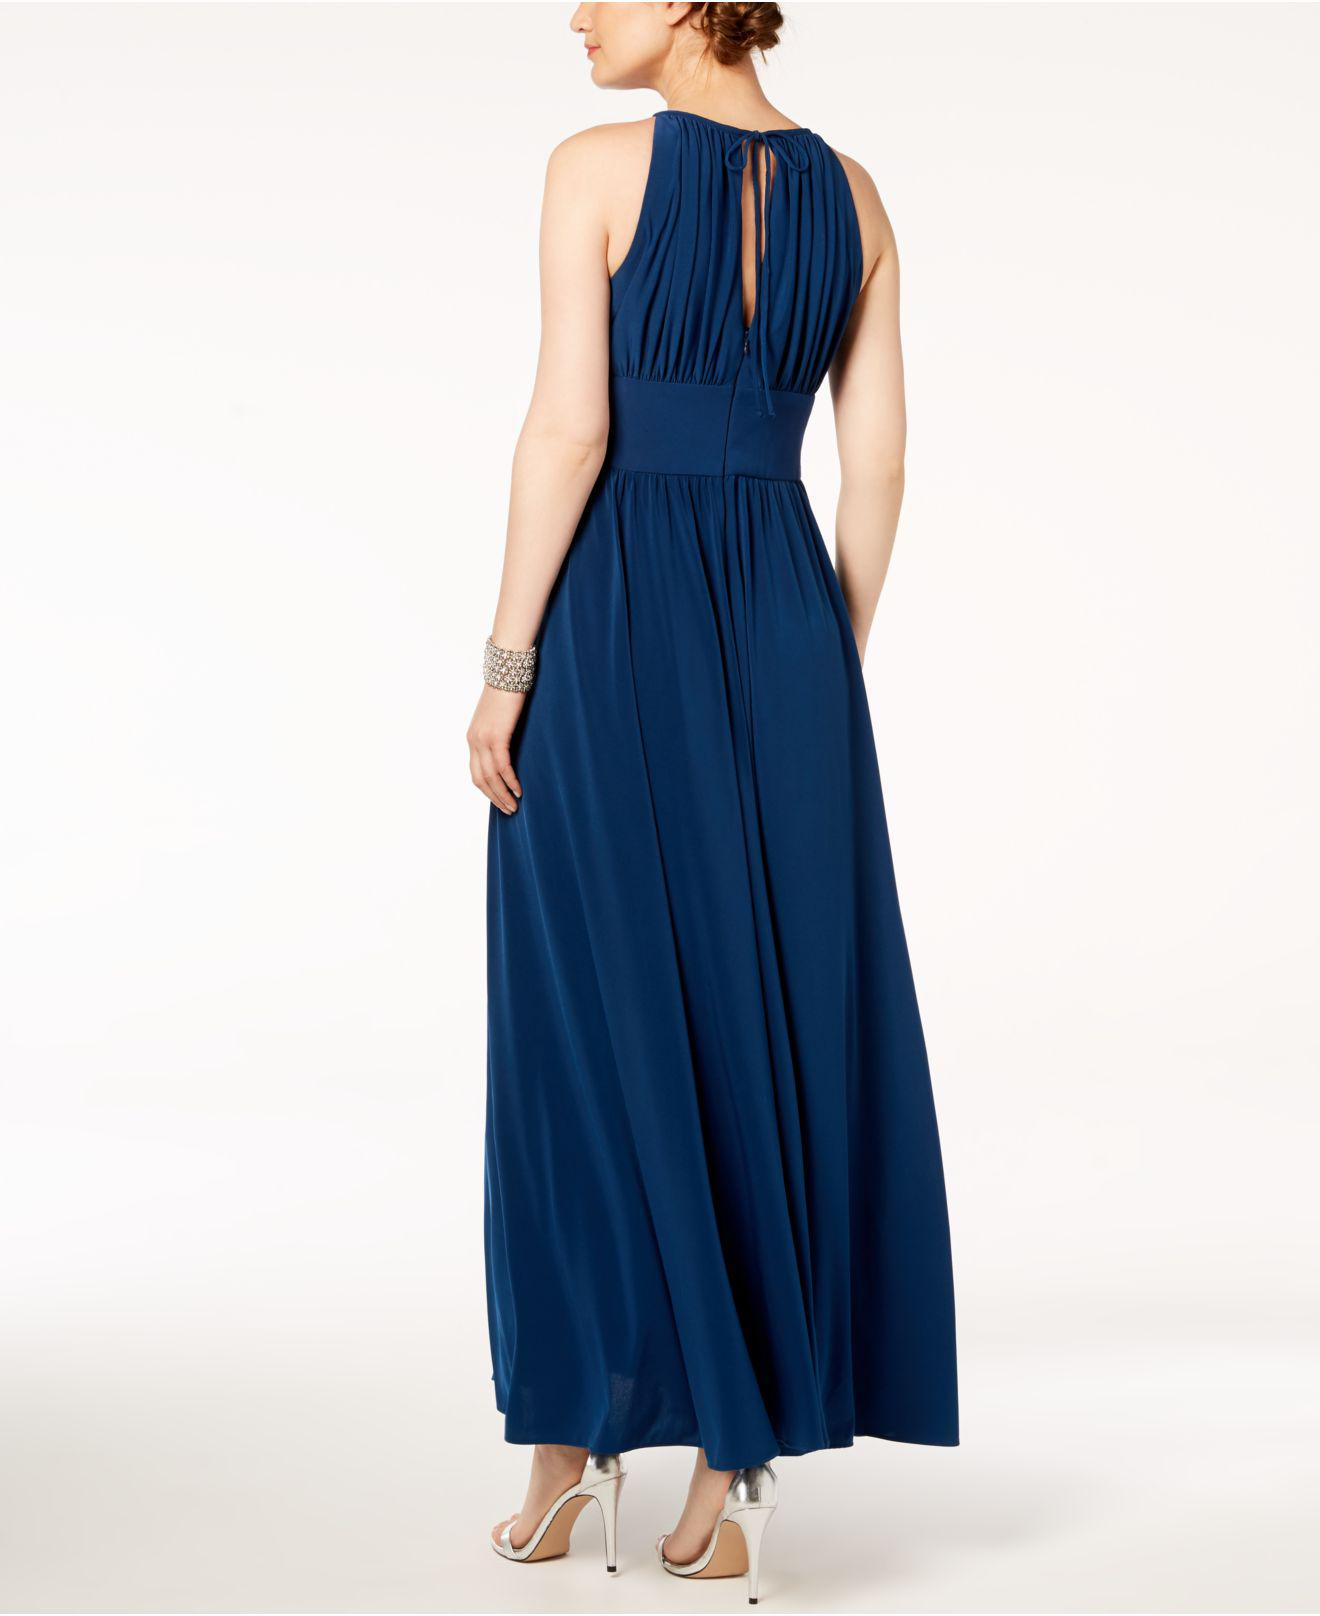 Lyst - R & M Richards R&m Richards Beaded Gown in Blue